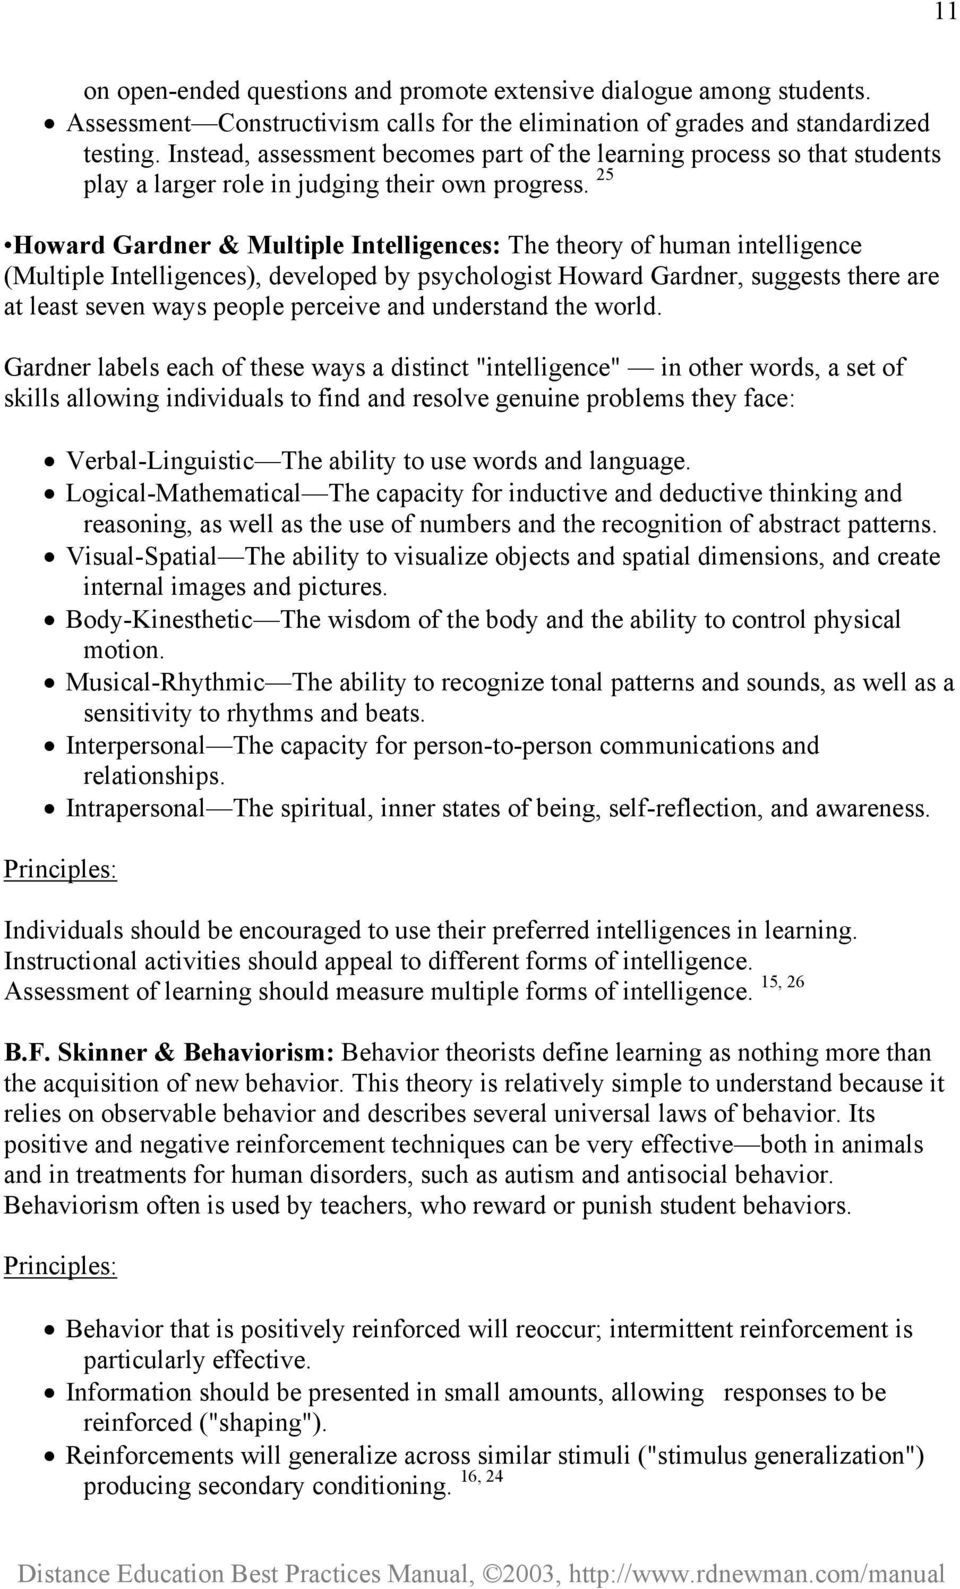 25 Howard Gardner & Multiple Intelligences: The theory of human intelligence (Multiple Intelligences), developed by psychologist Howard Gardner, suggests there are at least seven ways people perceive